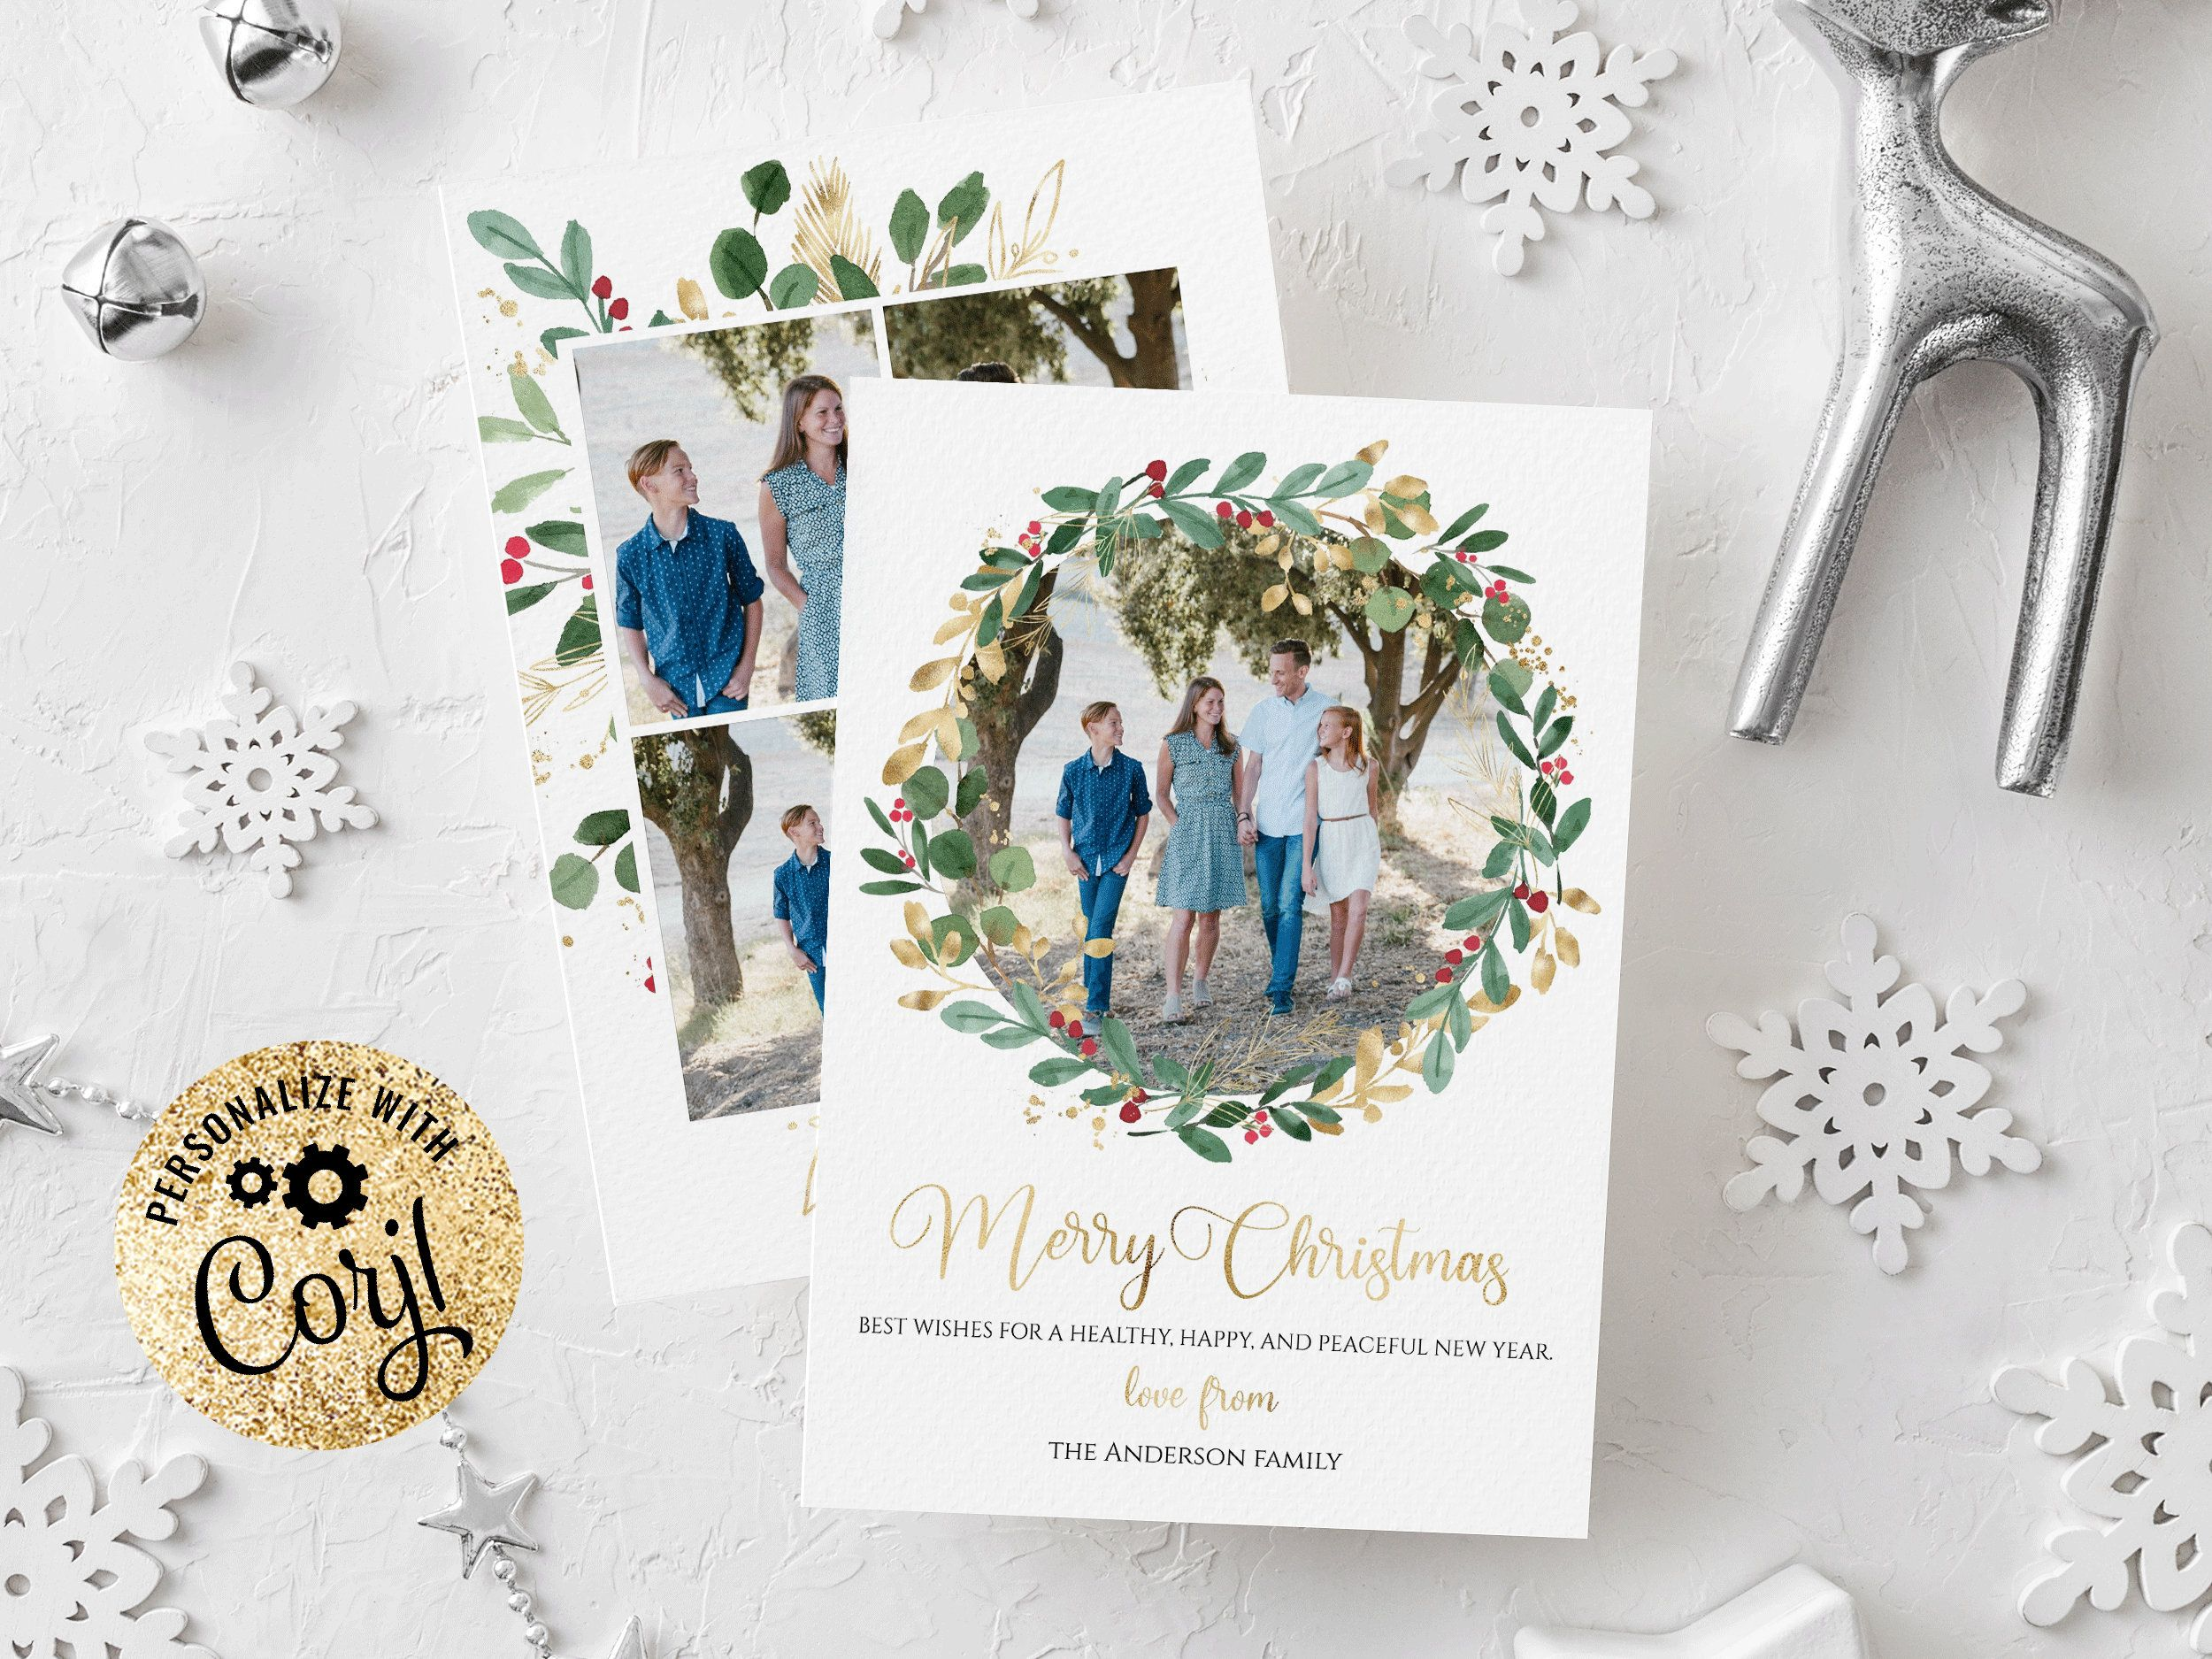 Christmas Card Template Christmas Cards Template 5x7 Photo Etsy In 2021 Christmas Card Template Holiday Card Template Printable Holiday Card